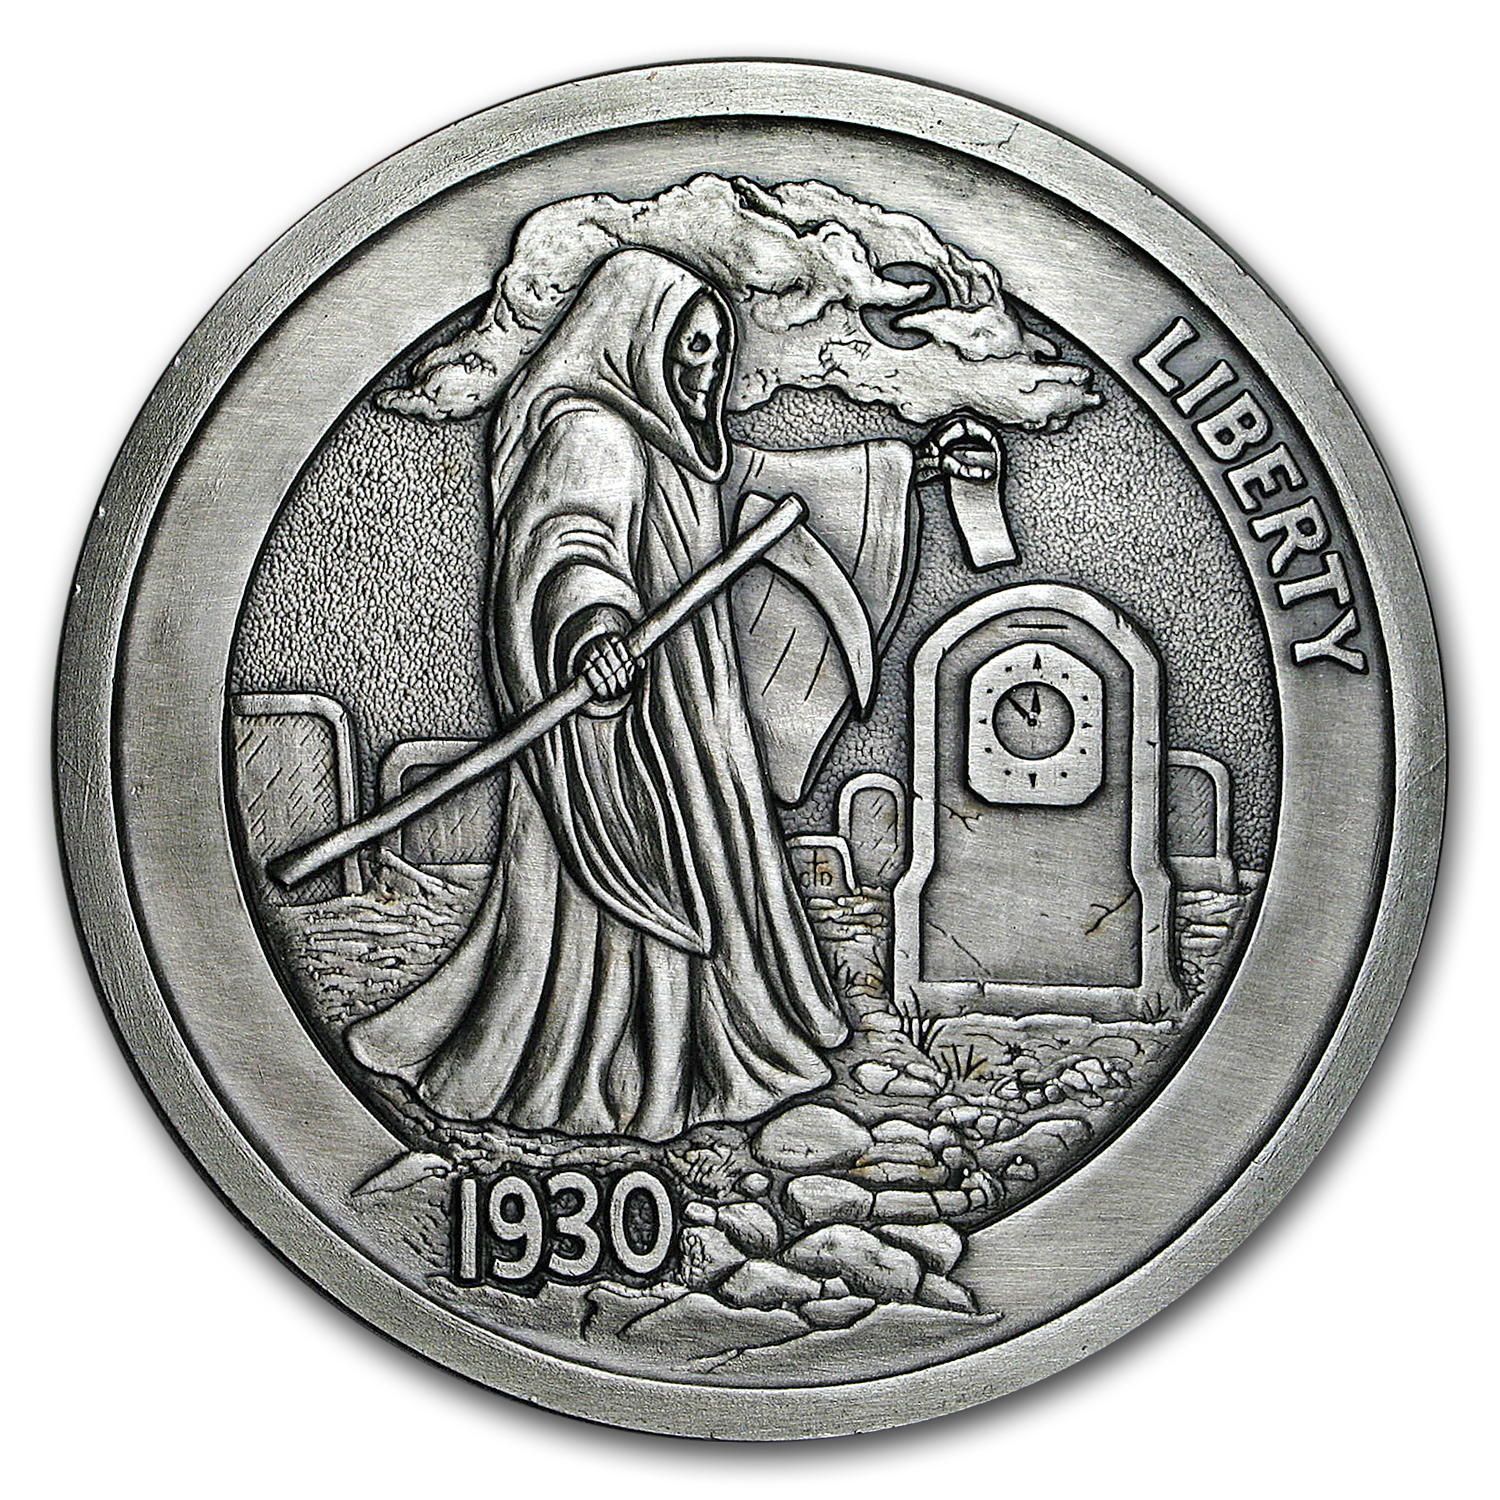 5 oz Silver Antique Hobo Nickel (Graveyard Shift)